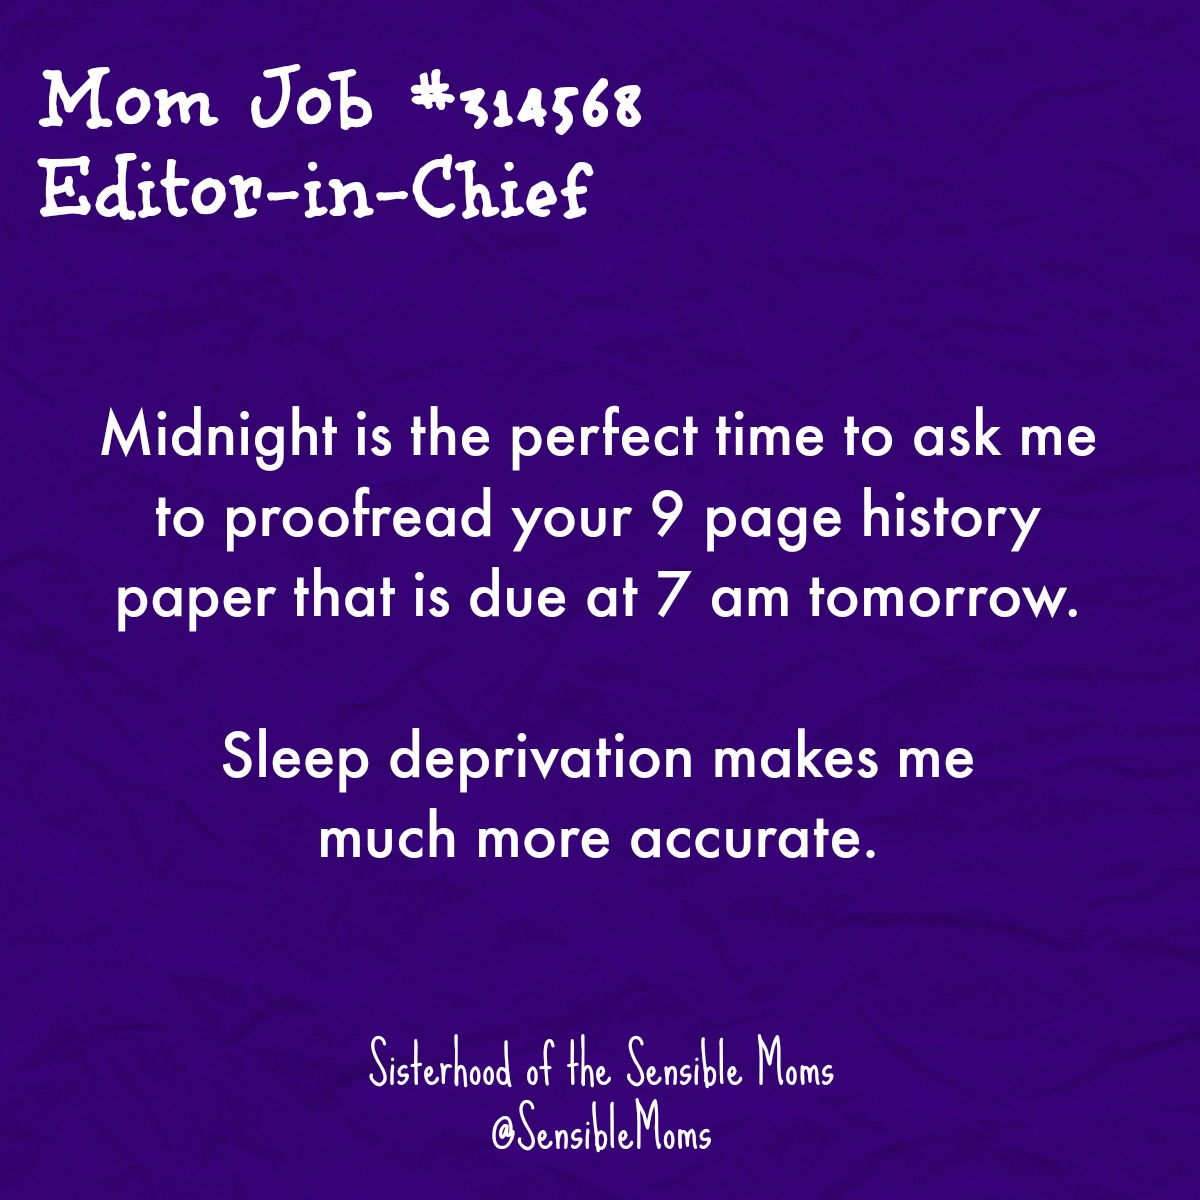 Being a mother means being a Jacqueline of All Trades . . . whether we want to be or not. But even if we can't get a little help, we can at least find the humor in these 13 Mom Jobs We All Can Relate To. | Sisterhood of the Sensible Moms